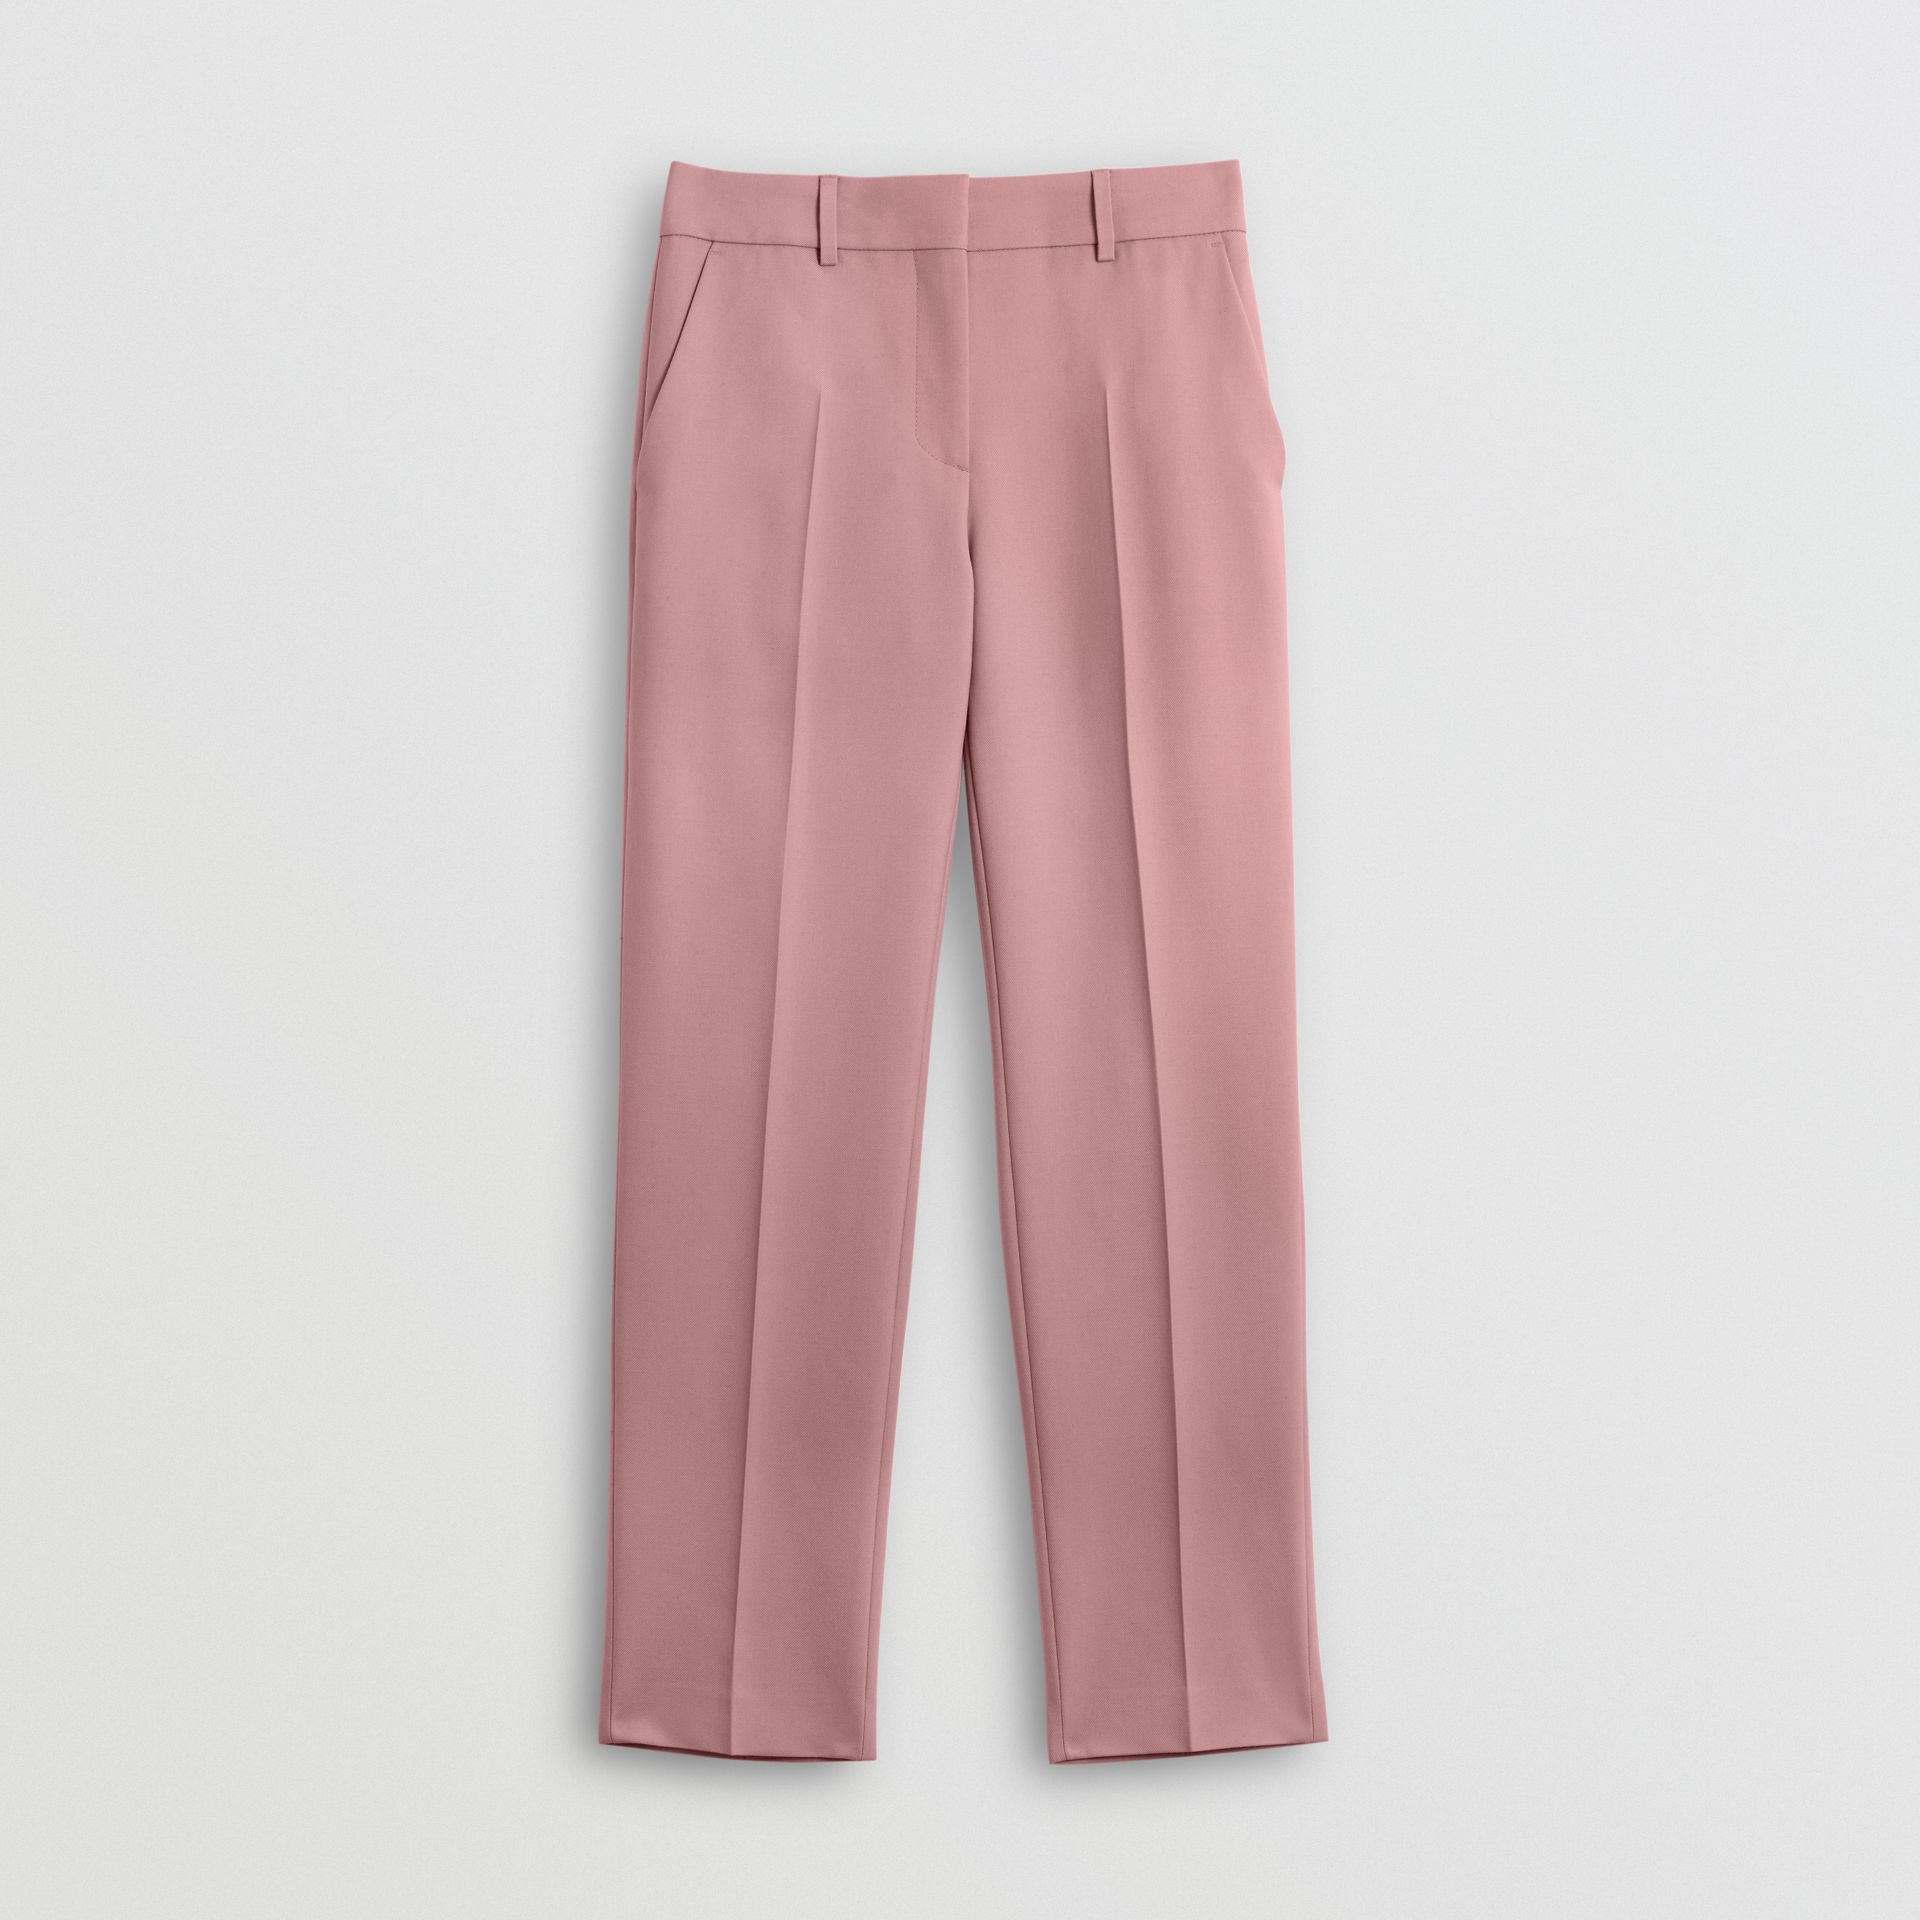 Straight Fit Wool Blend Tailored Trousers in Chalk Pink - Women | Burberry United Kingdom - gallery image 3